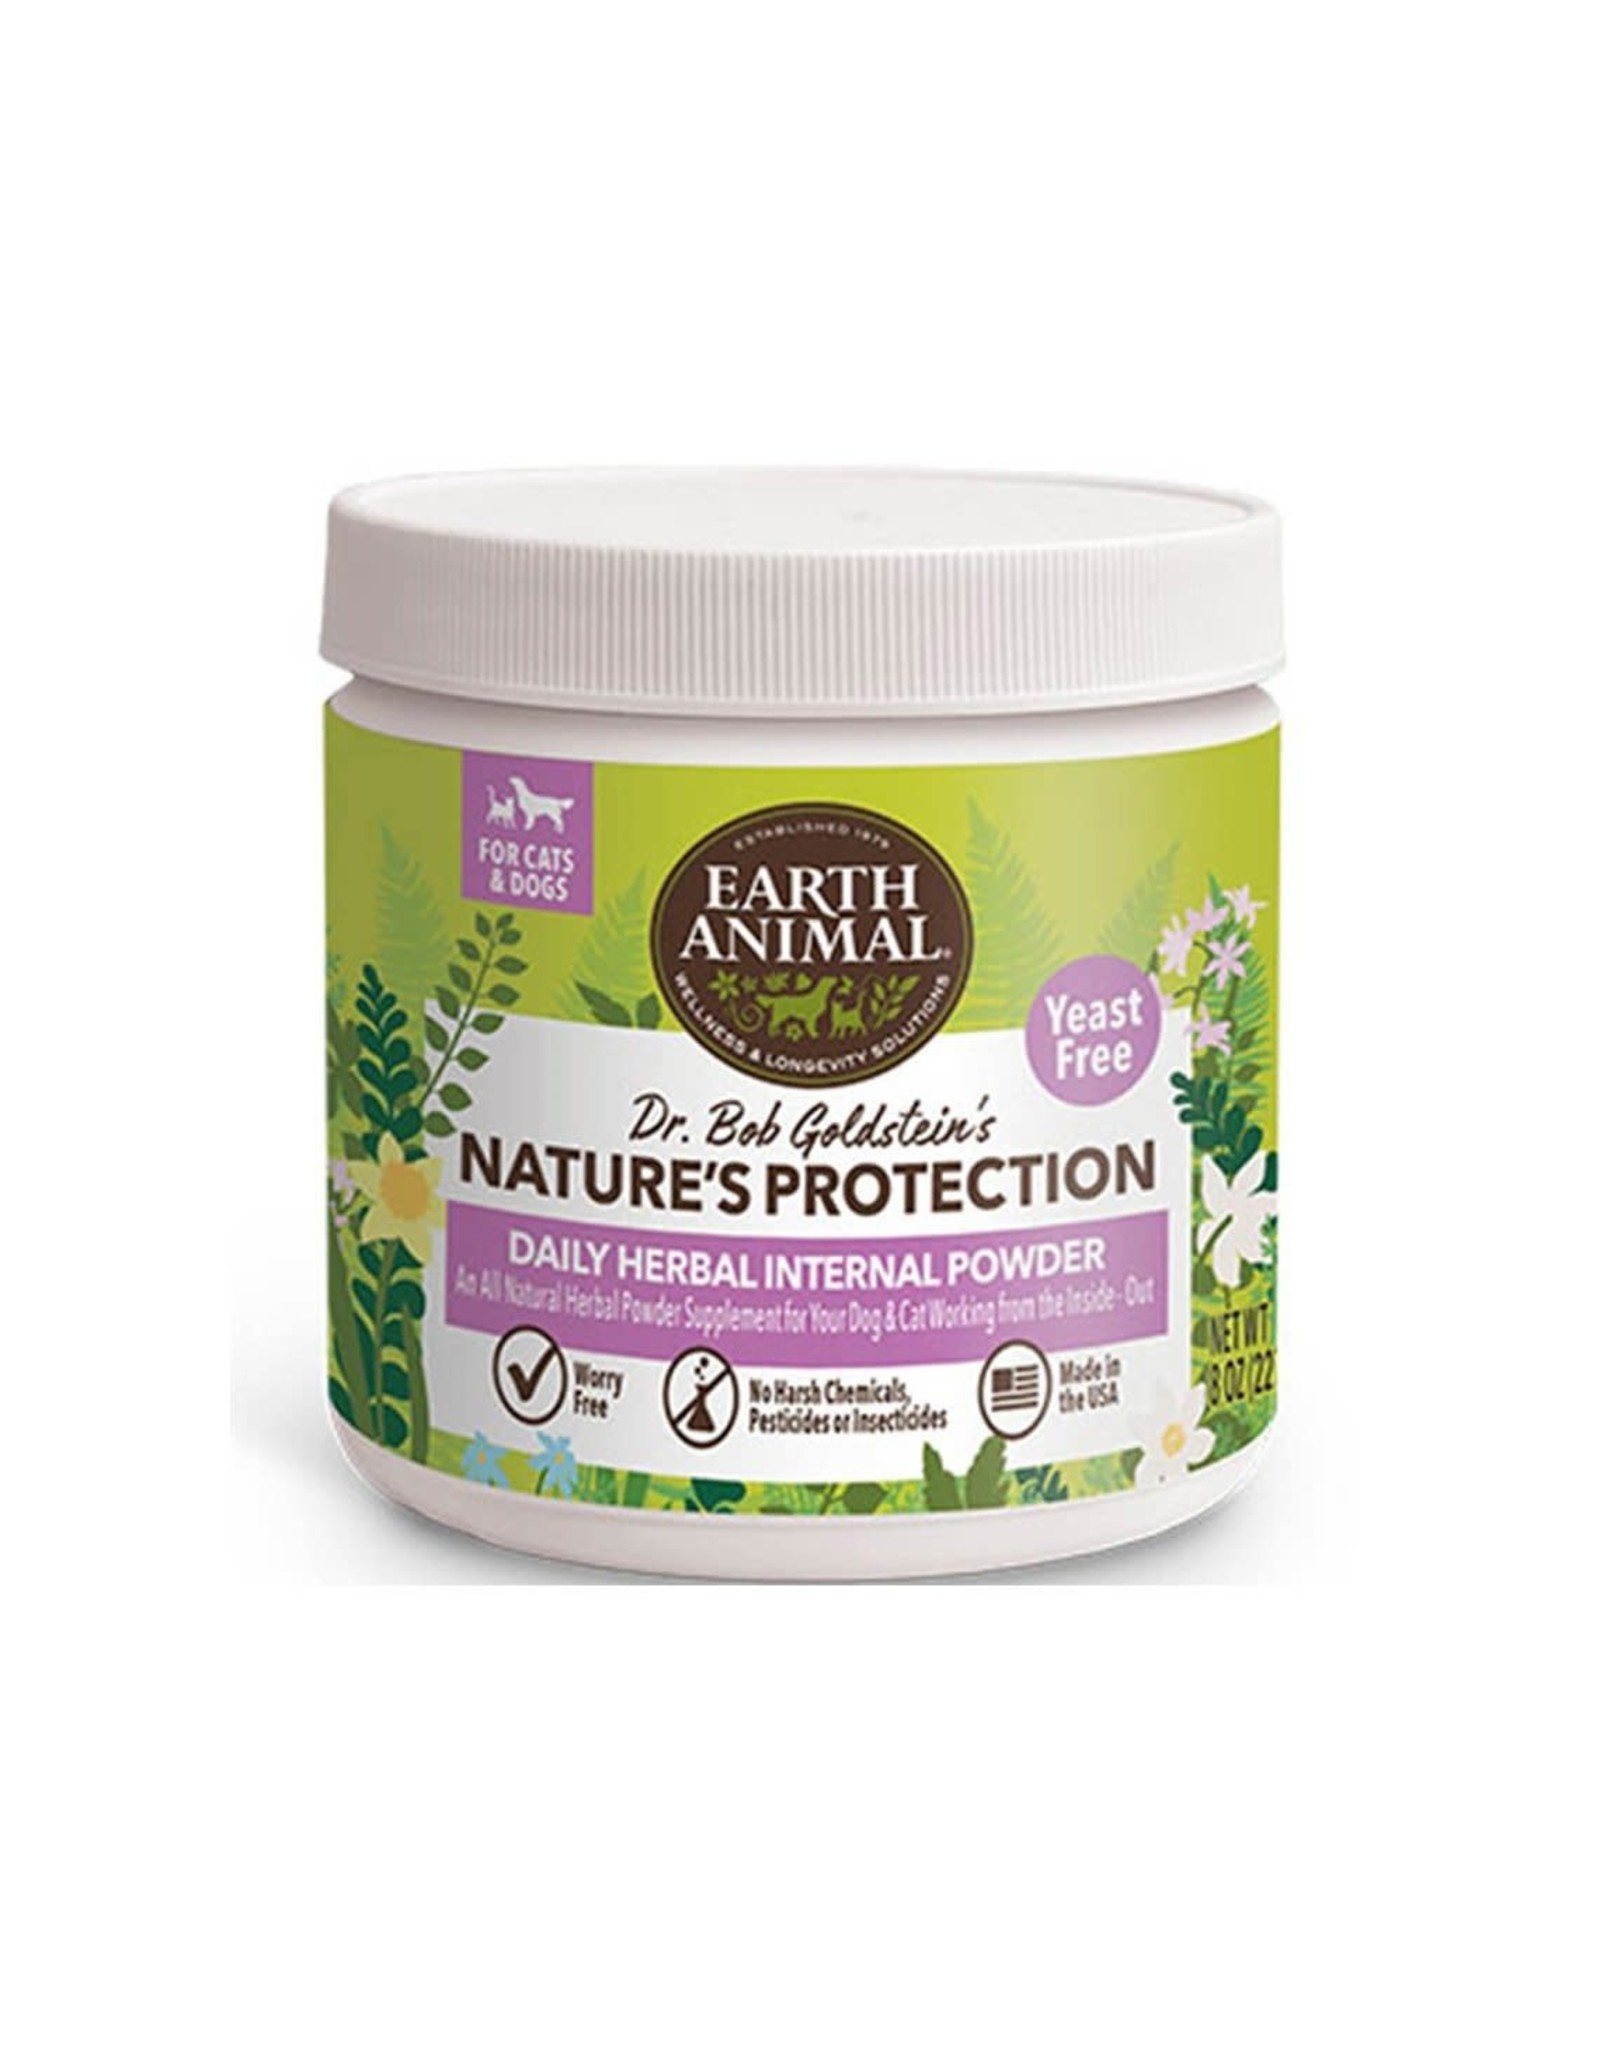 Earth Animal EARTH ANIMAL NATURE'S PROTECTION DAILY HERBAL INTERNAL POWDER 8OZ